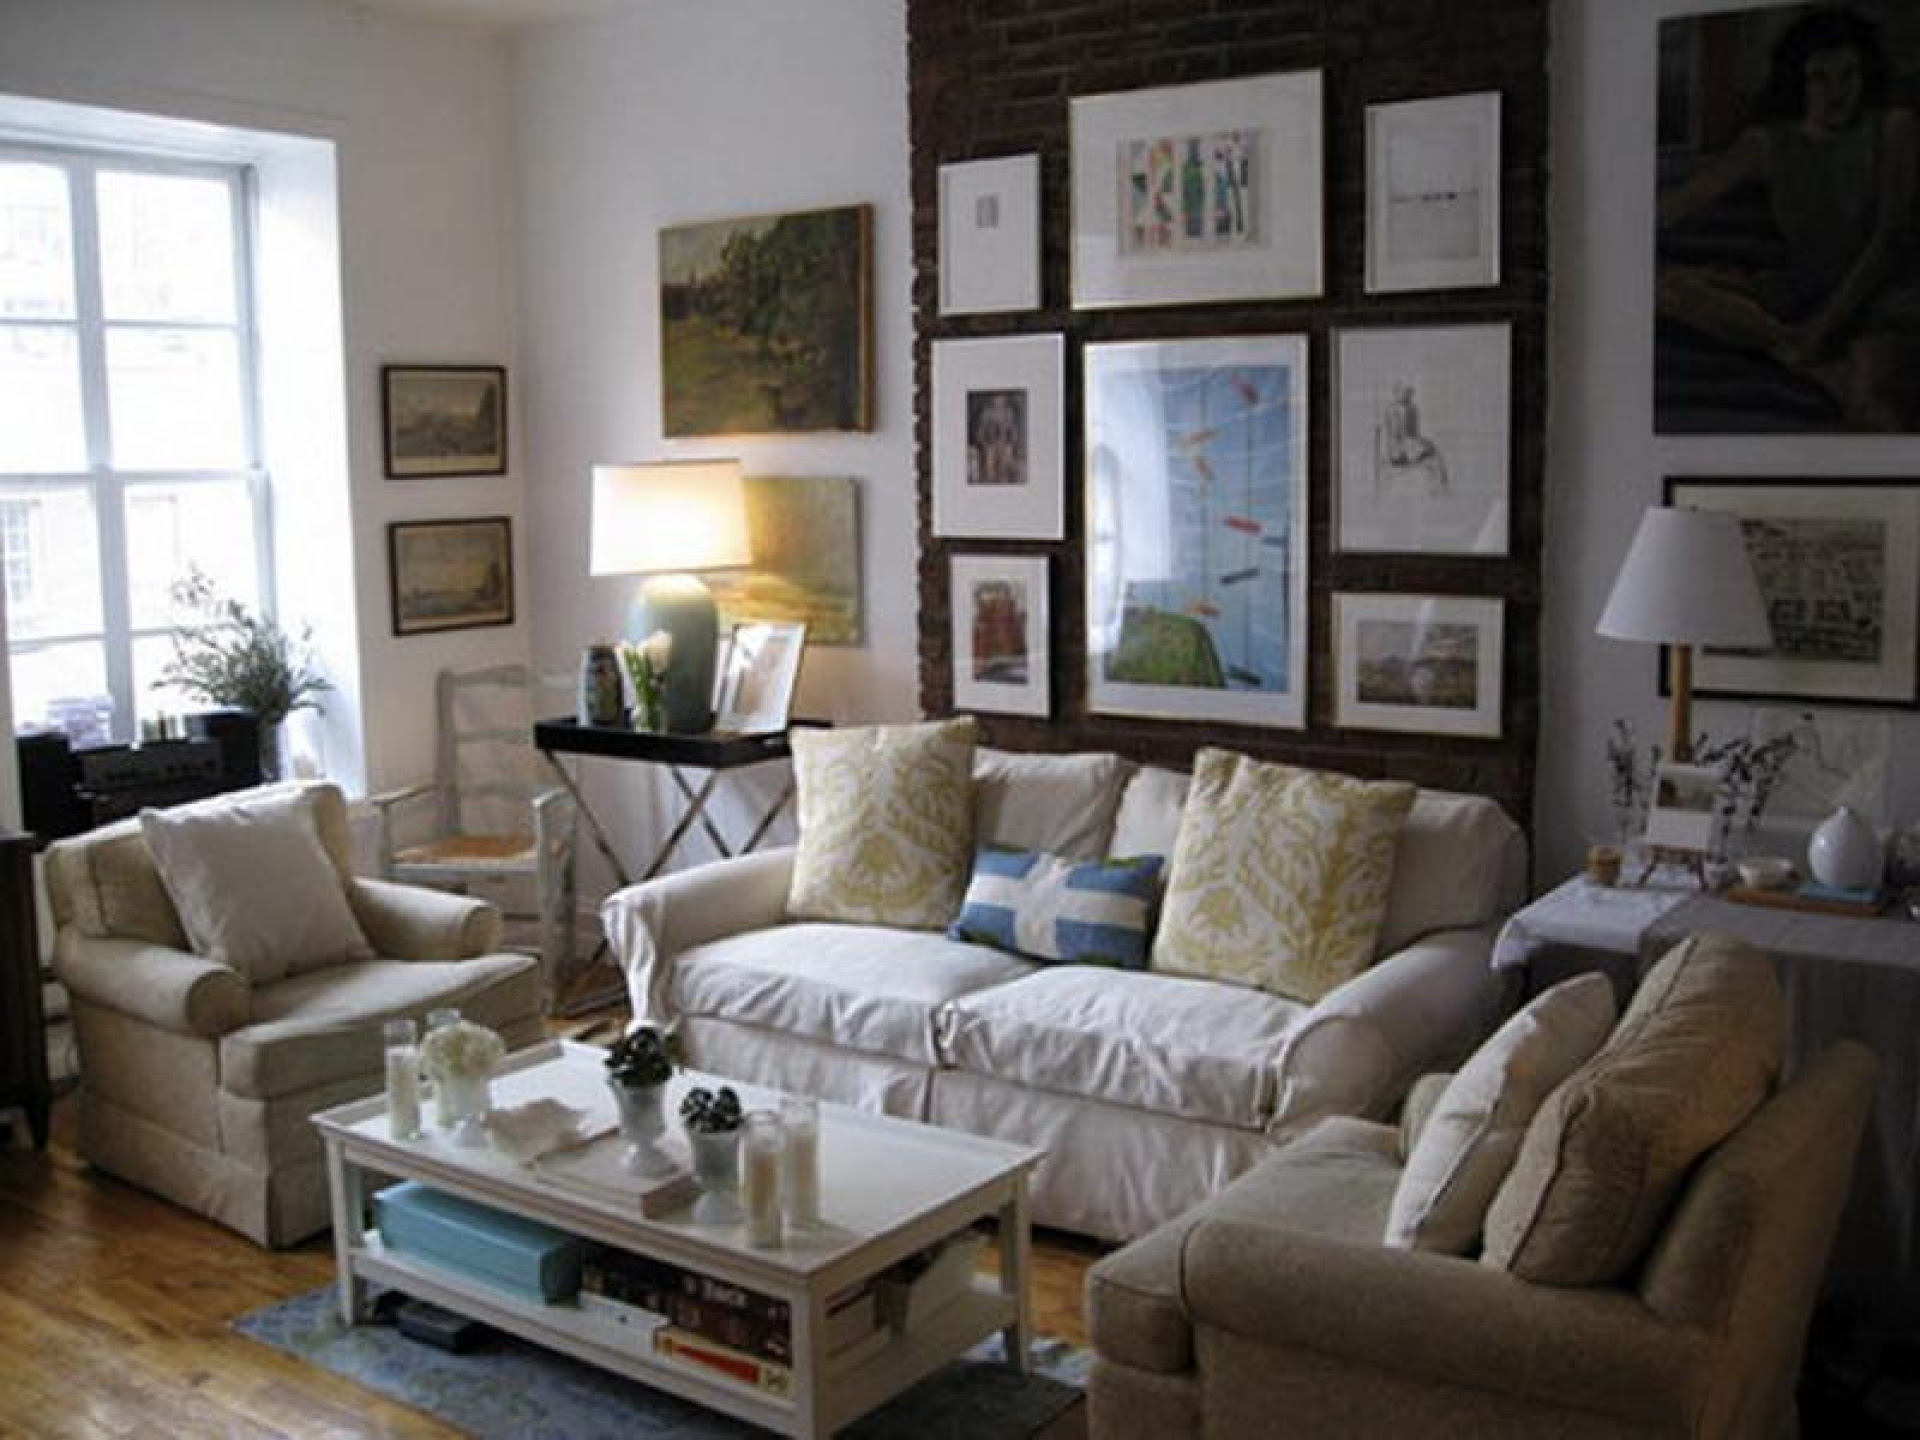 Adorable Cozy And Rustic Chic Living Room For Your ...